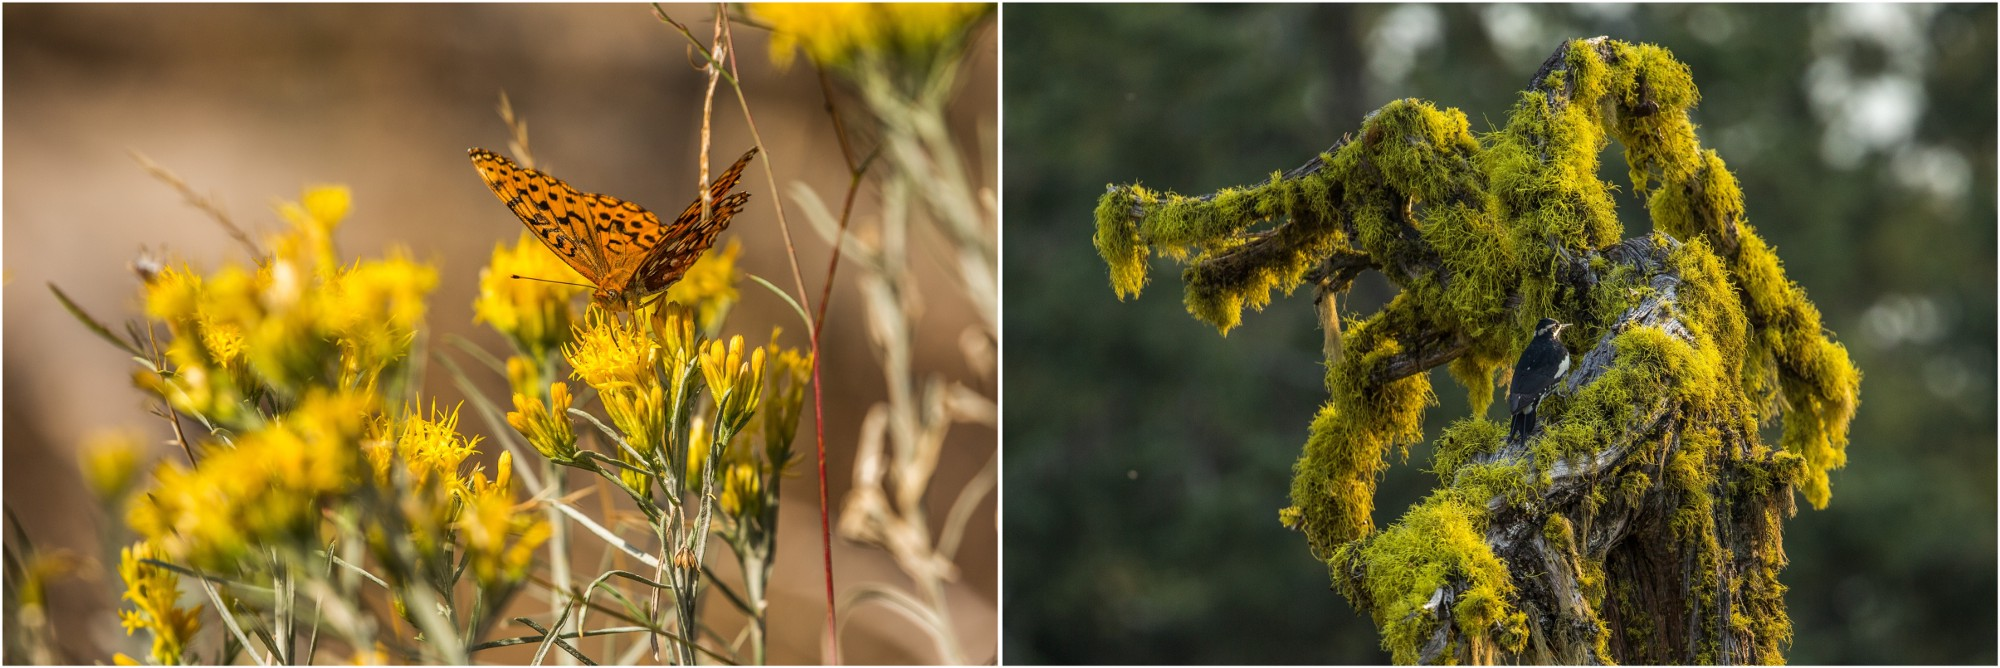 - Left: Cascade-Siskiyou National Monument hosts one of the largest diversities of butterflies in the US. Pictured here is an Atlantis fritillary. Right: A female woodpecker picking through the moss and lichens.